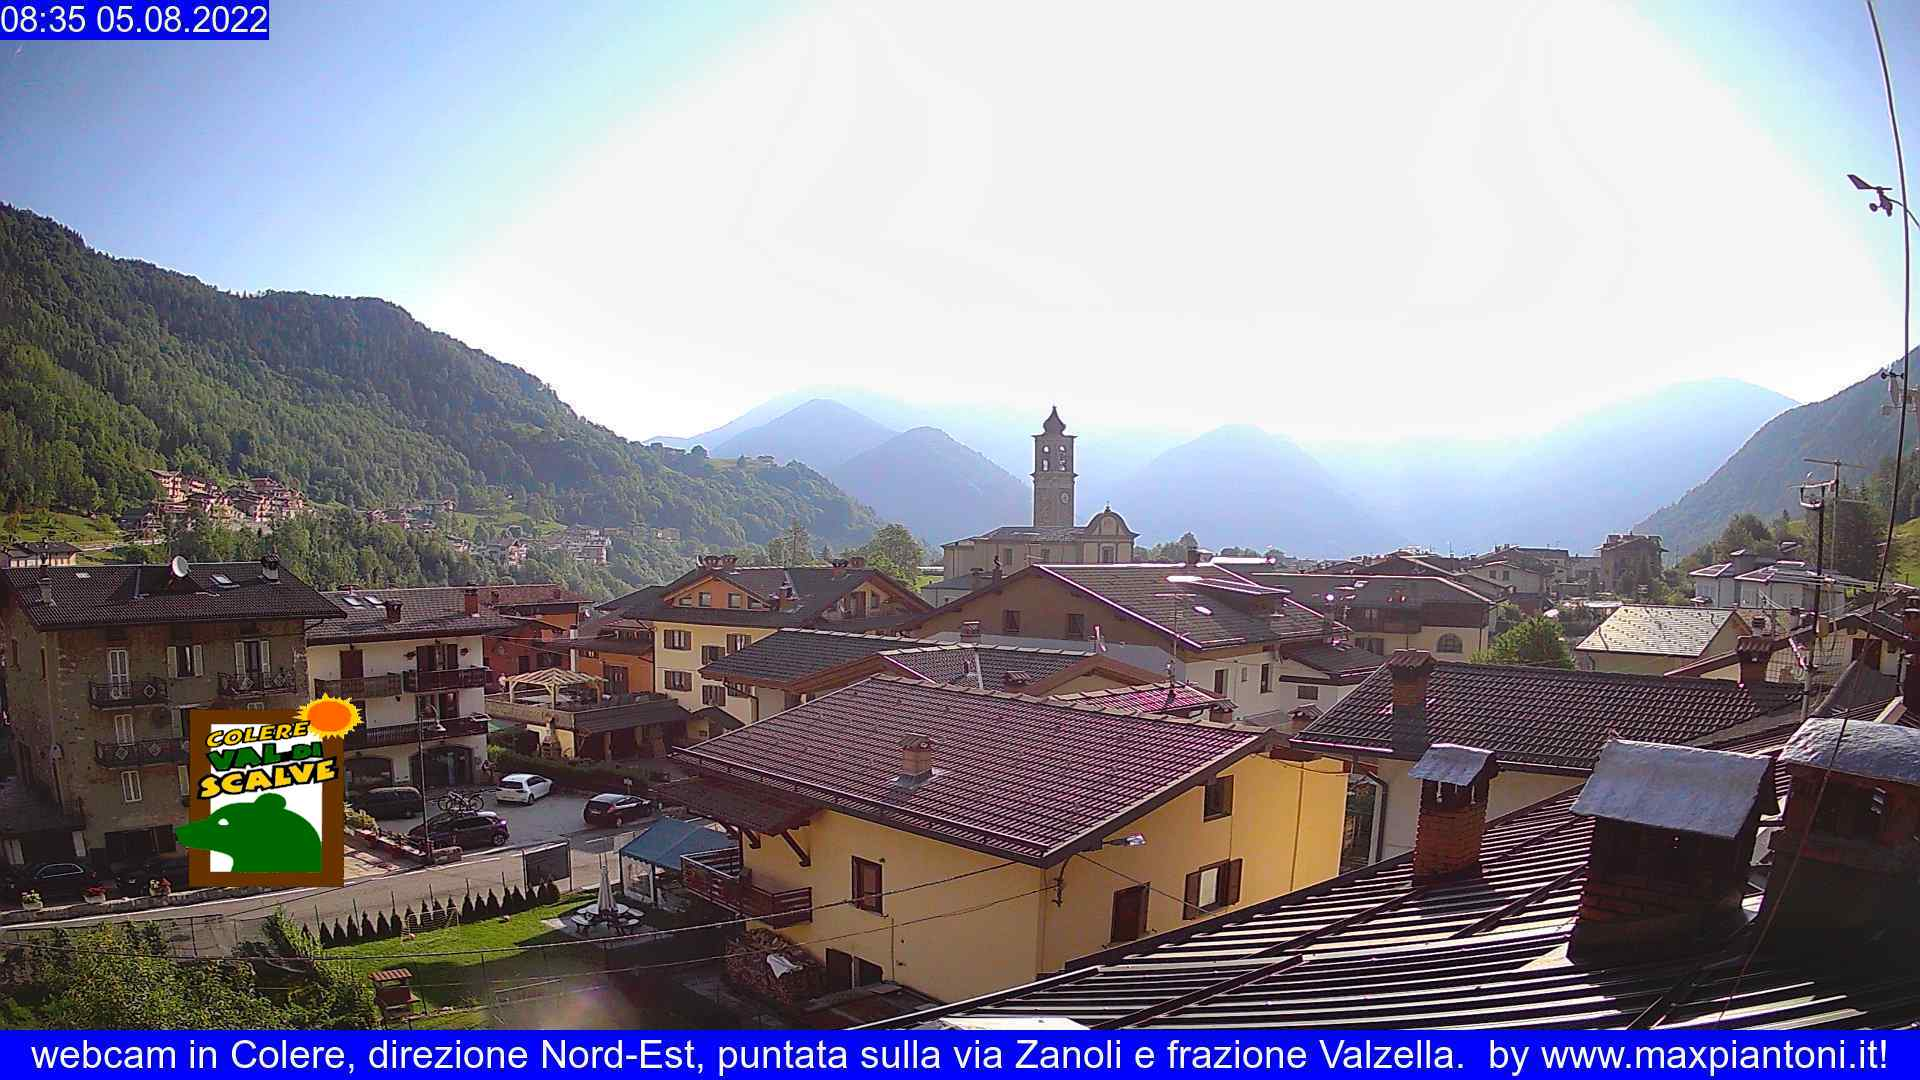 webcam Colere  - www.maxpiantoni.it